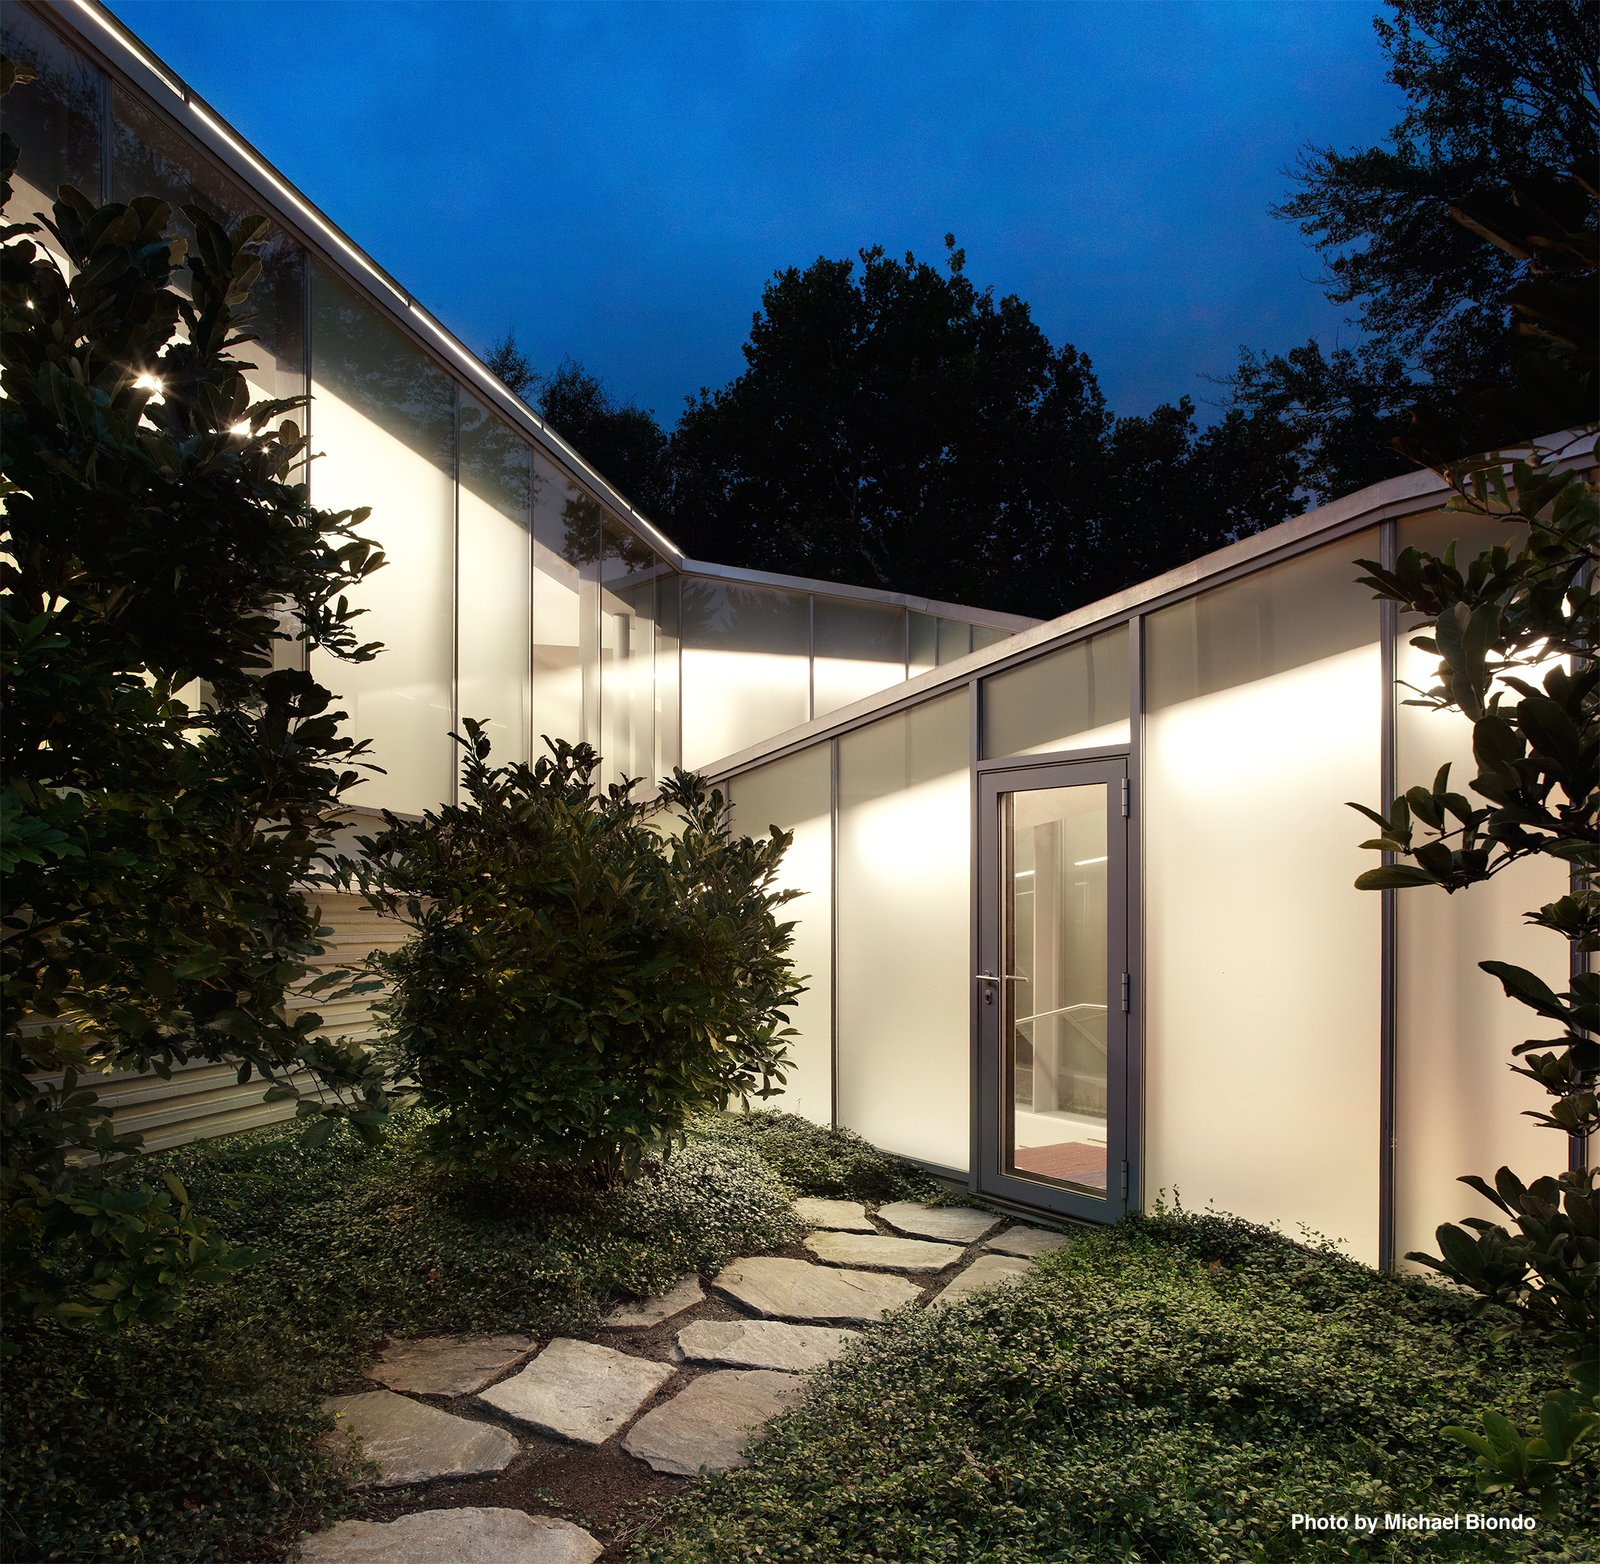 The original Breuer structure is connected to Mori's addition by a triangulated glass corridor that includes a graduated staircase.  Marcel Breuer's New Canaan Home by Dwell